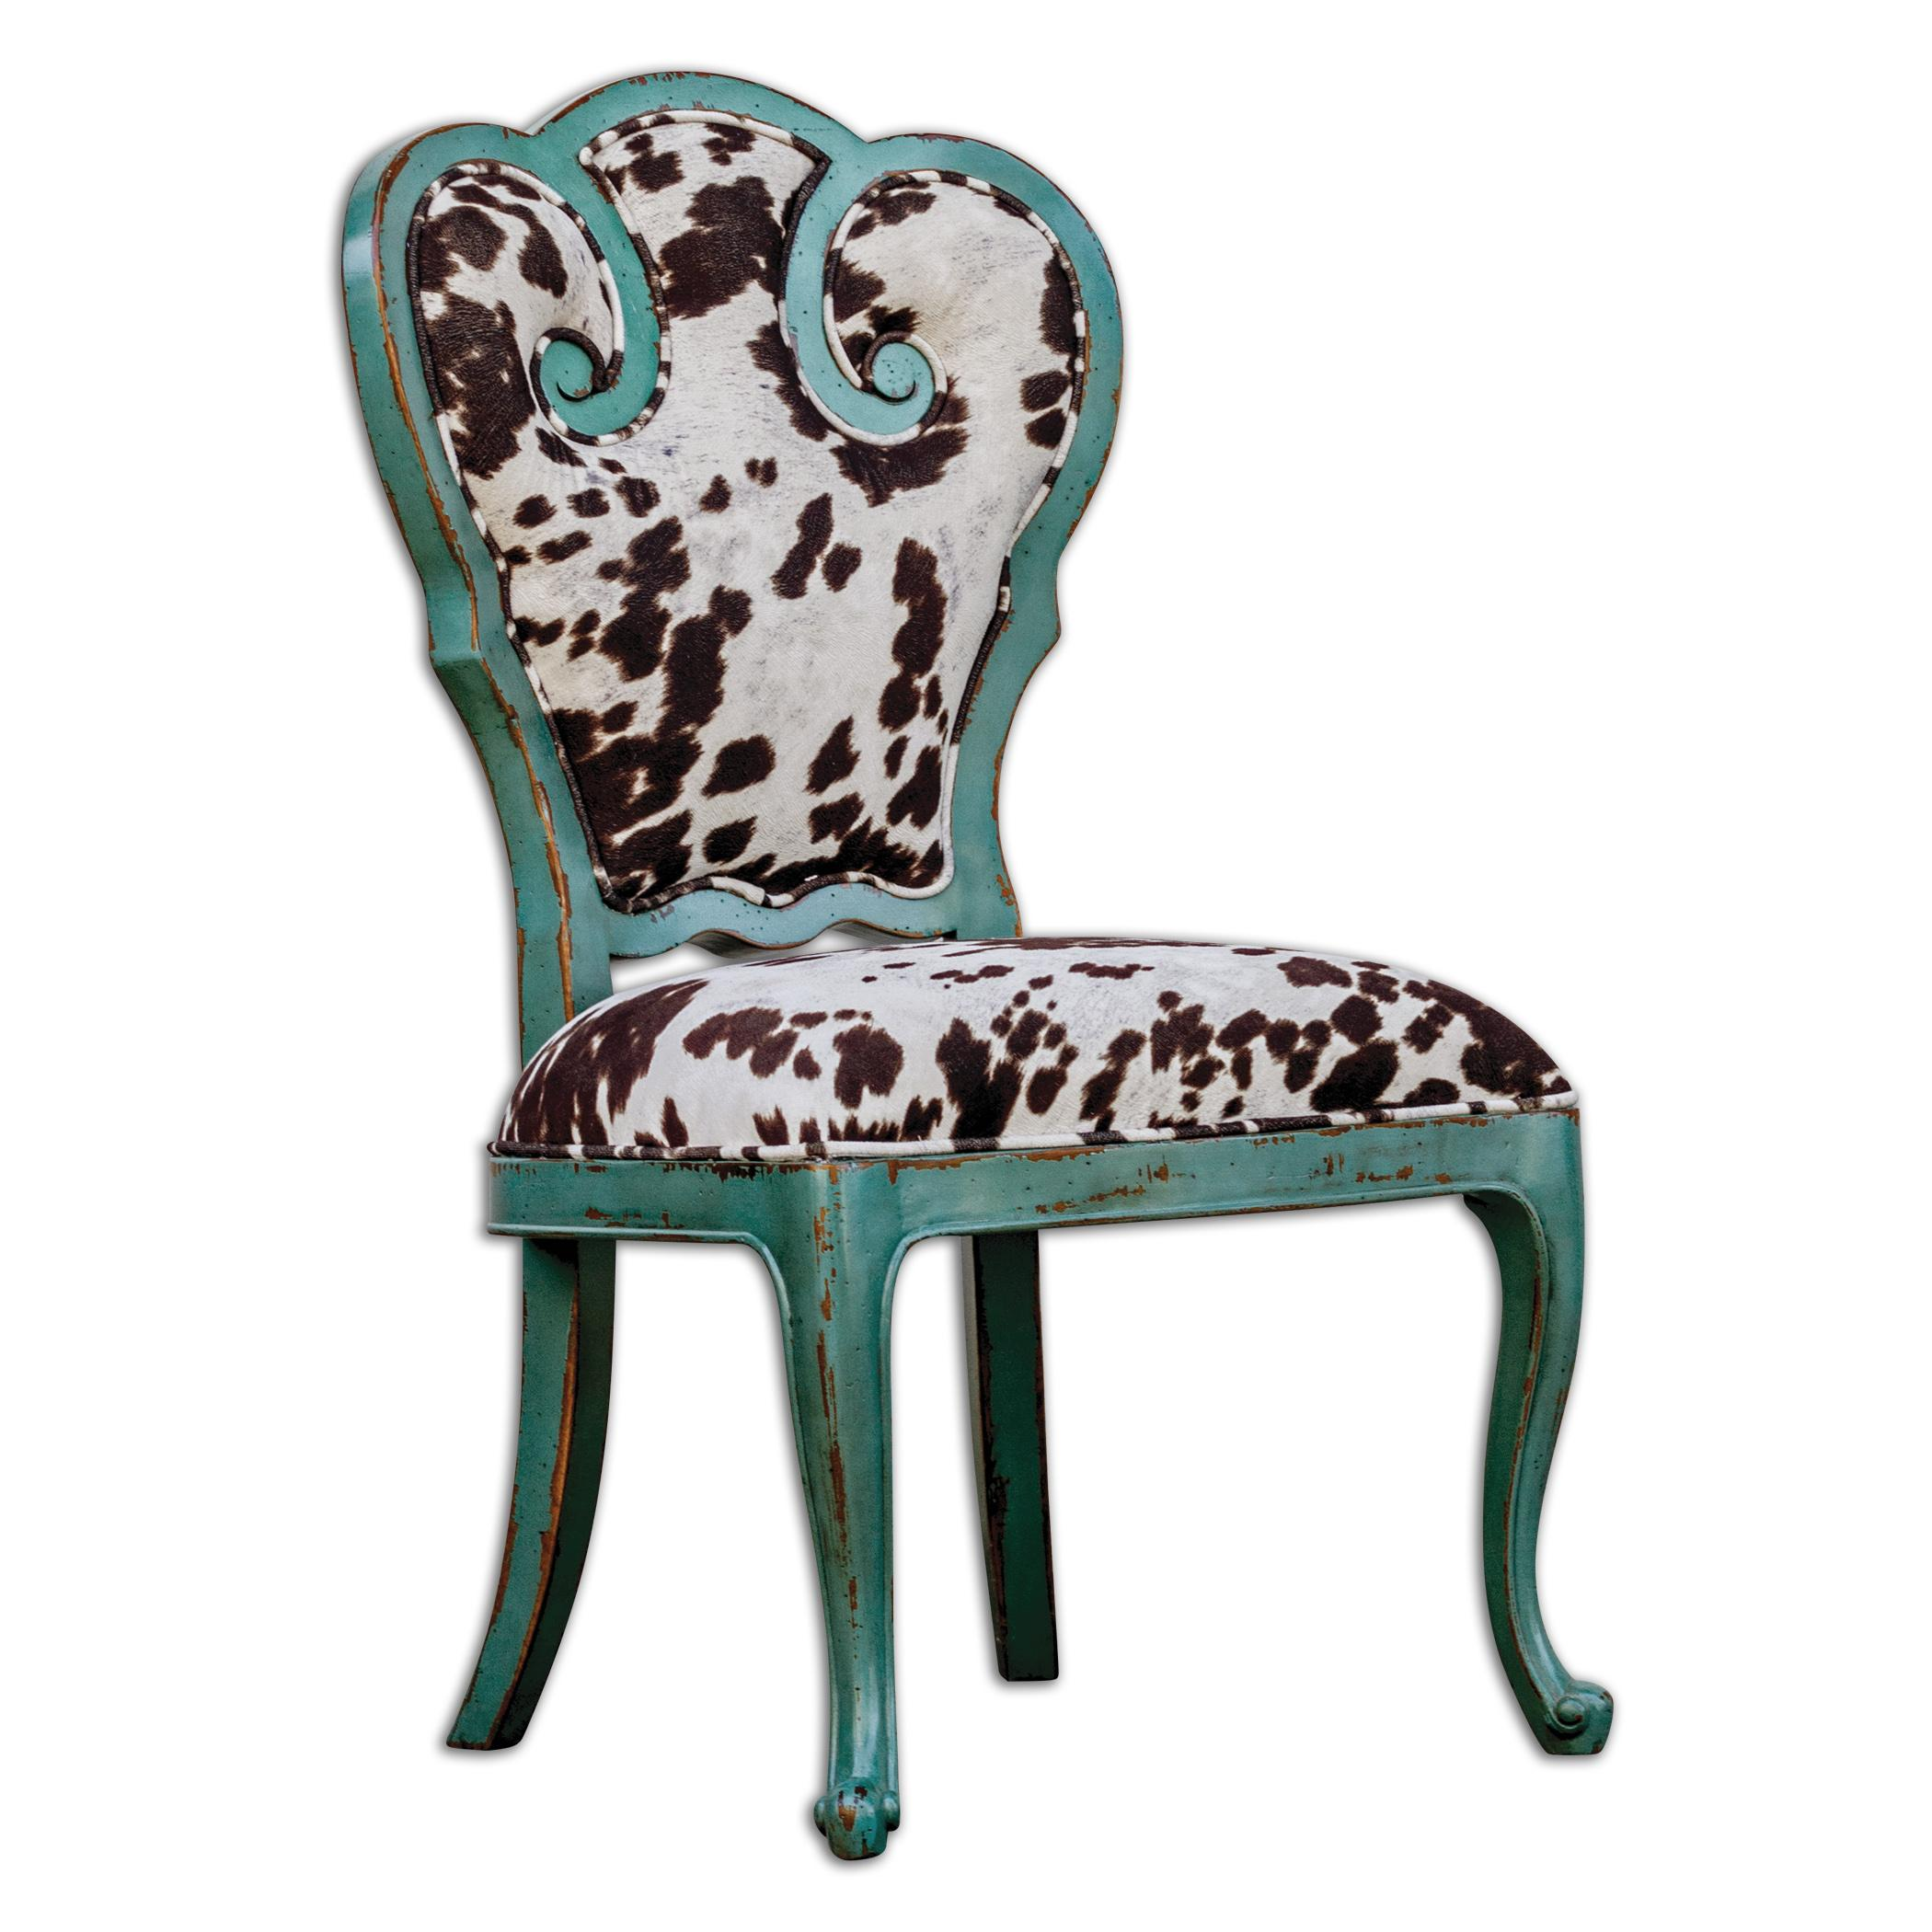 Uttermost Accent Furniture Chahna Velvet Accent Chair - Item Number: 23620